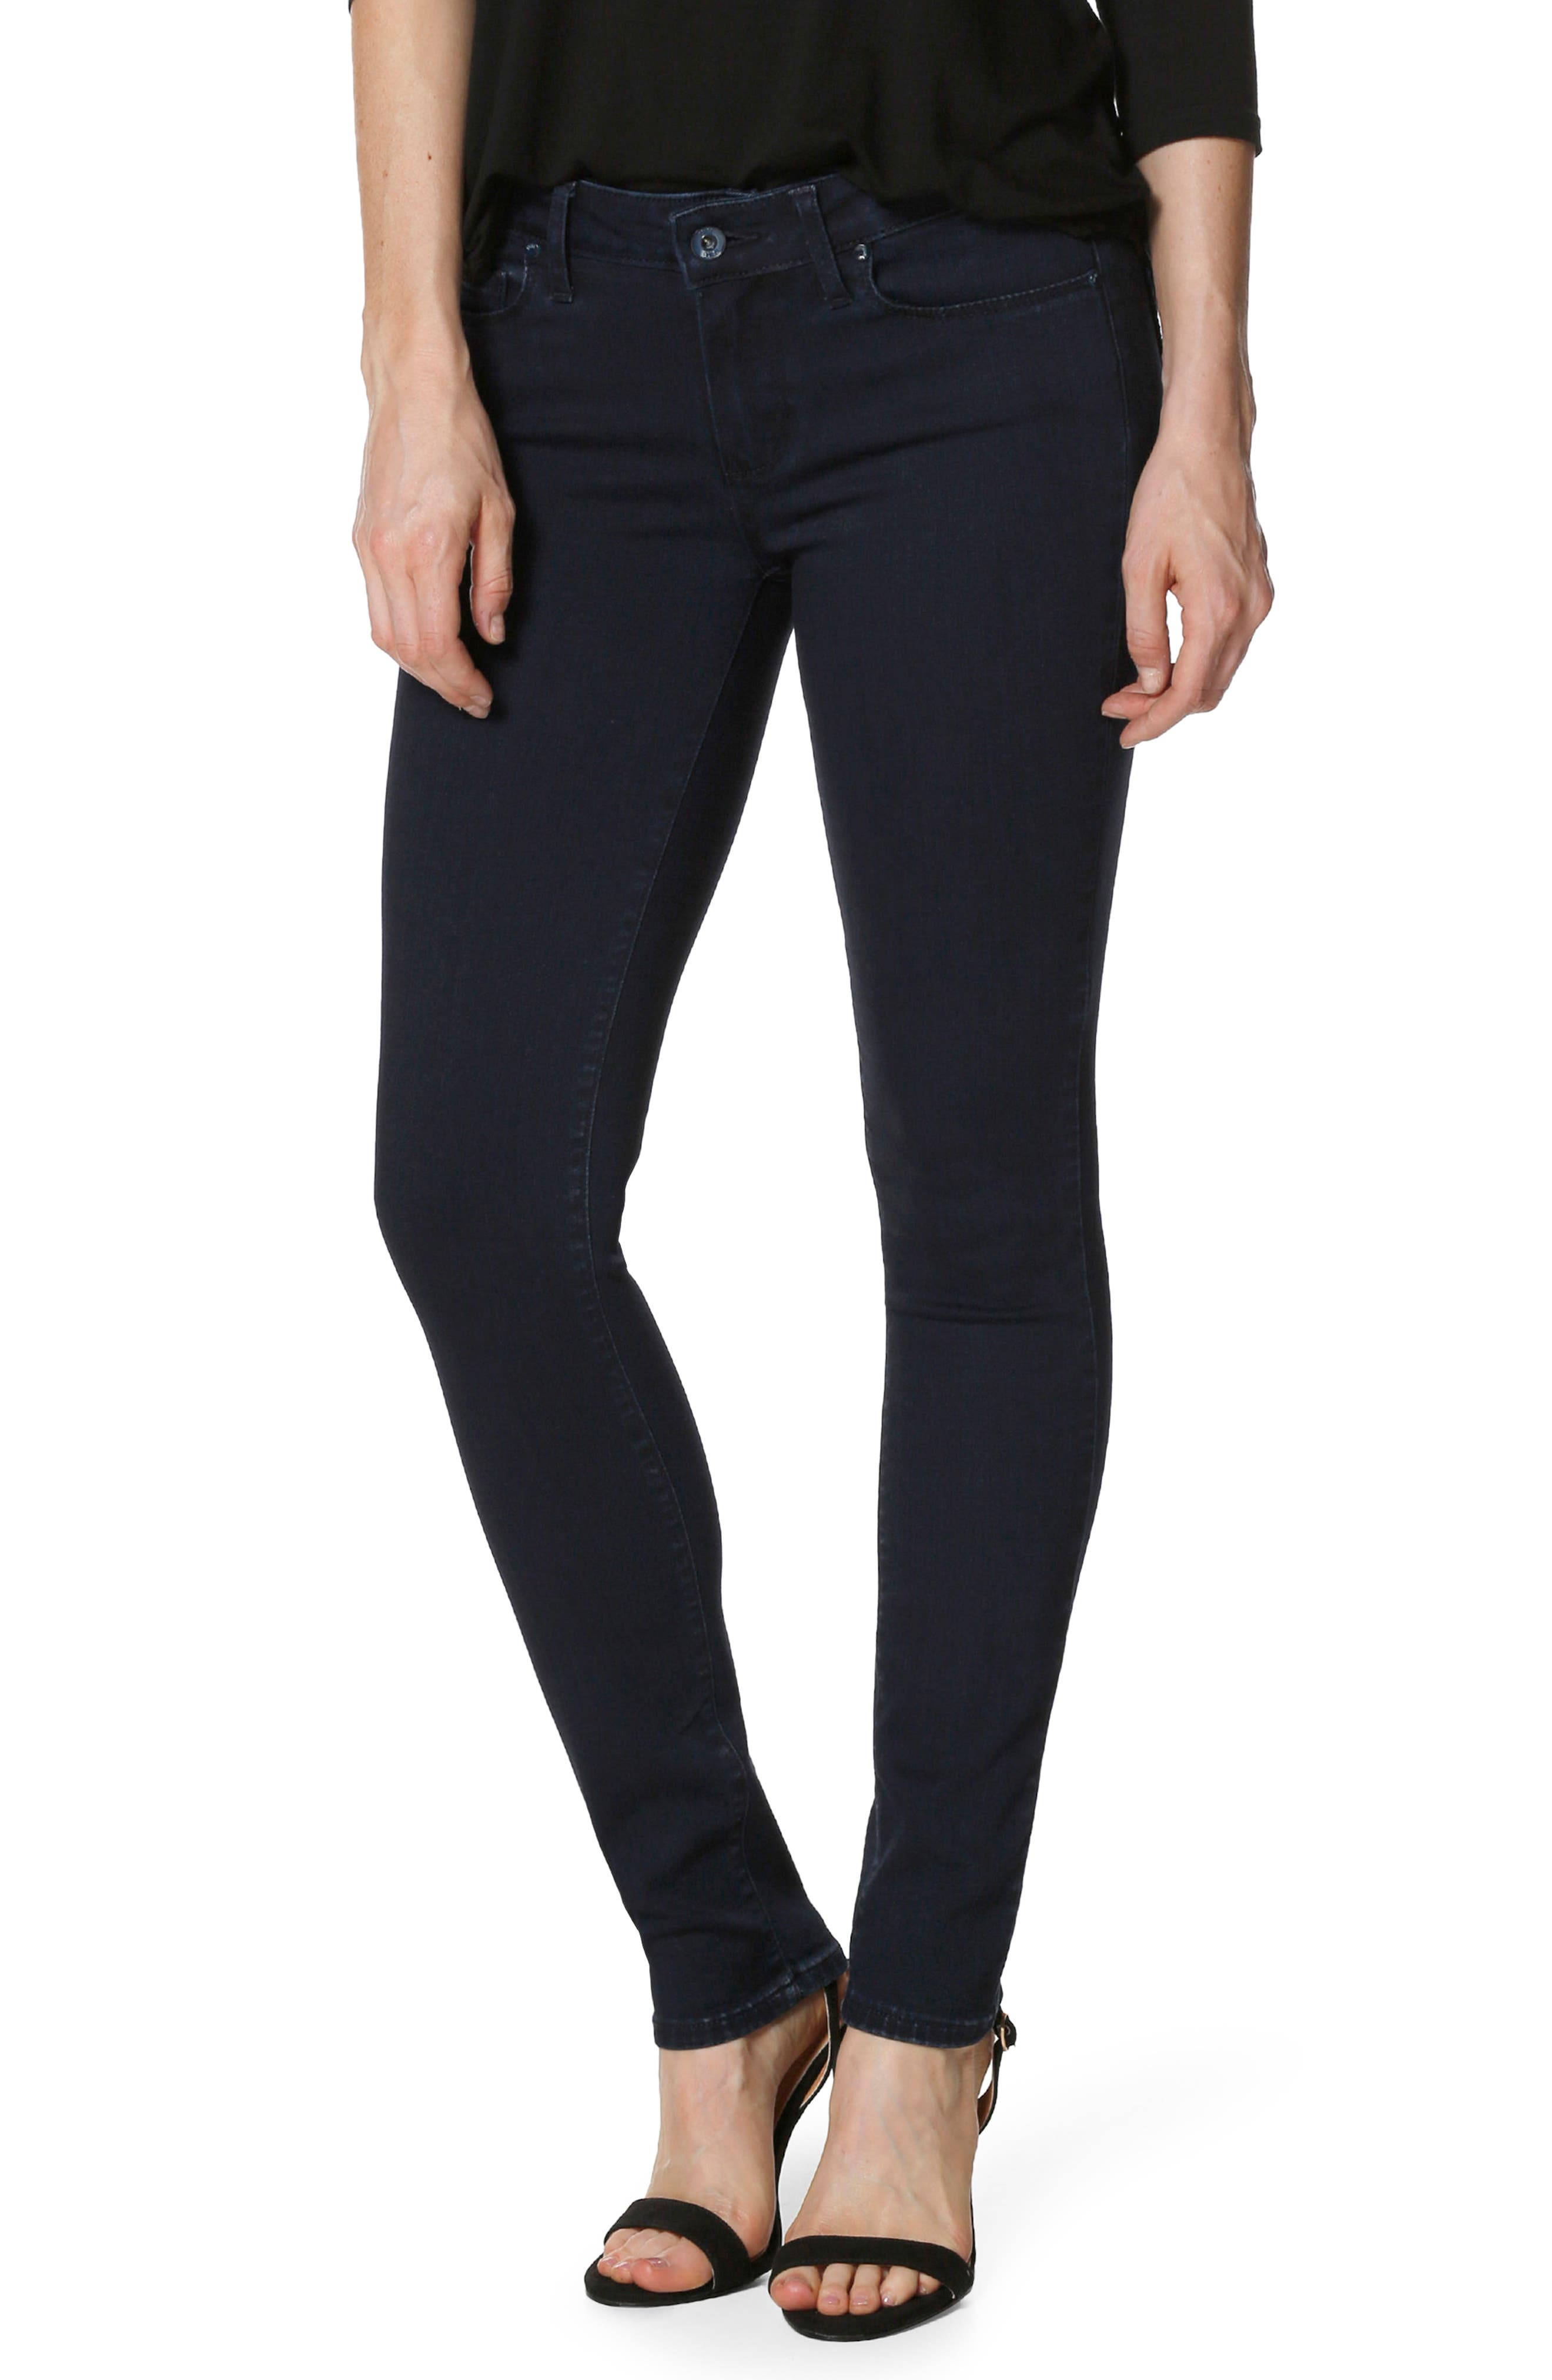 Transcend - Verdugo Ultra Skinny Jeans,                         Main,                         color, Alley